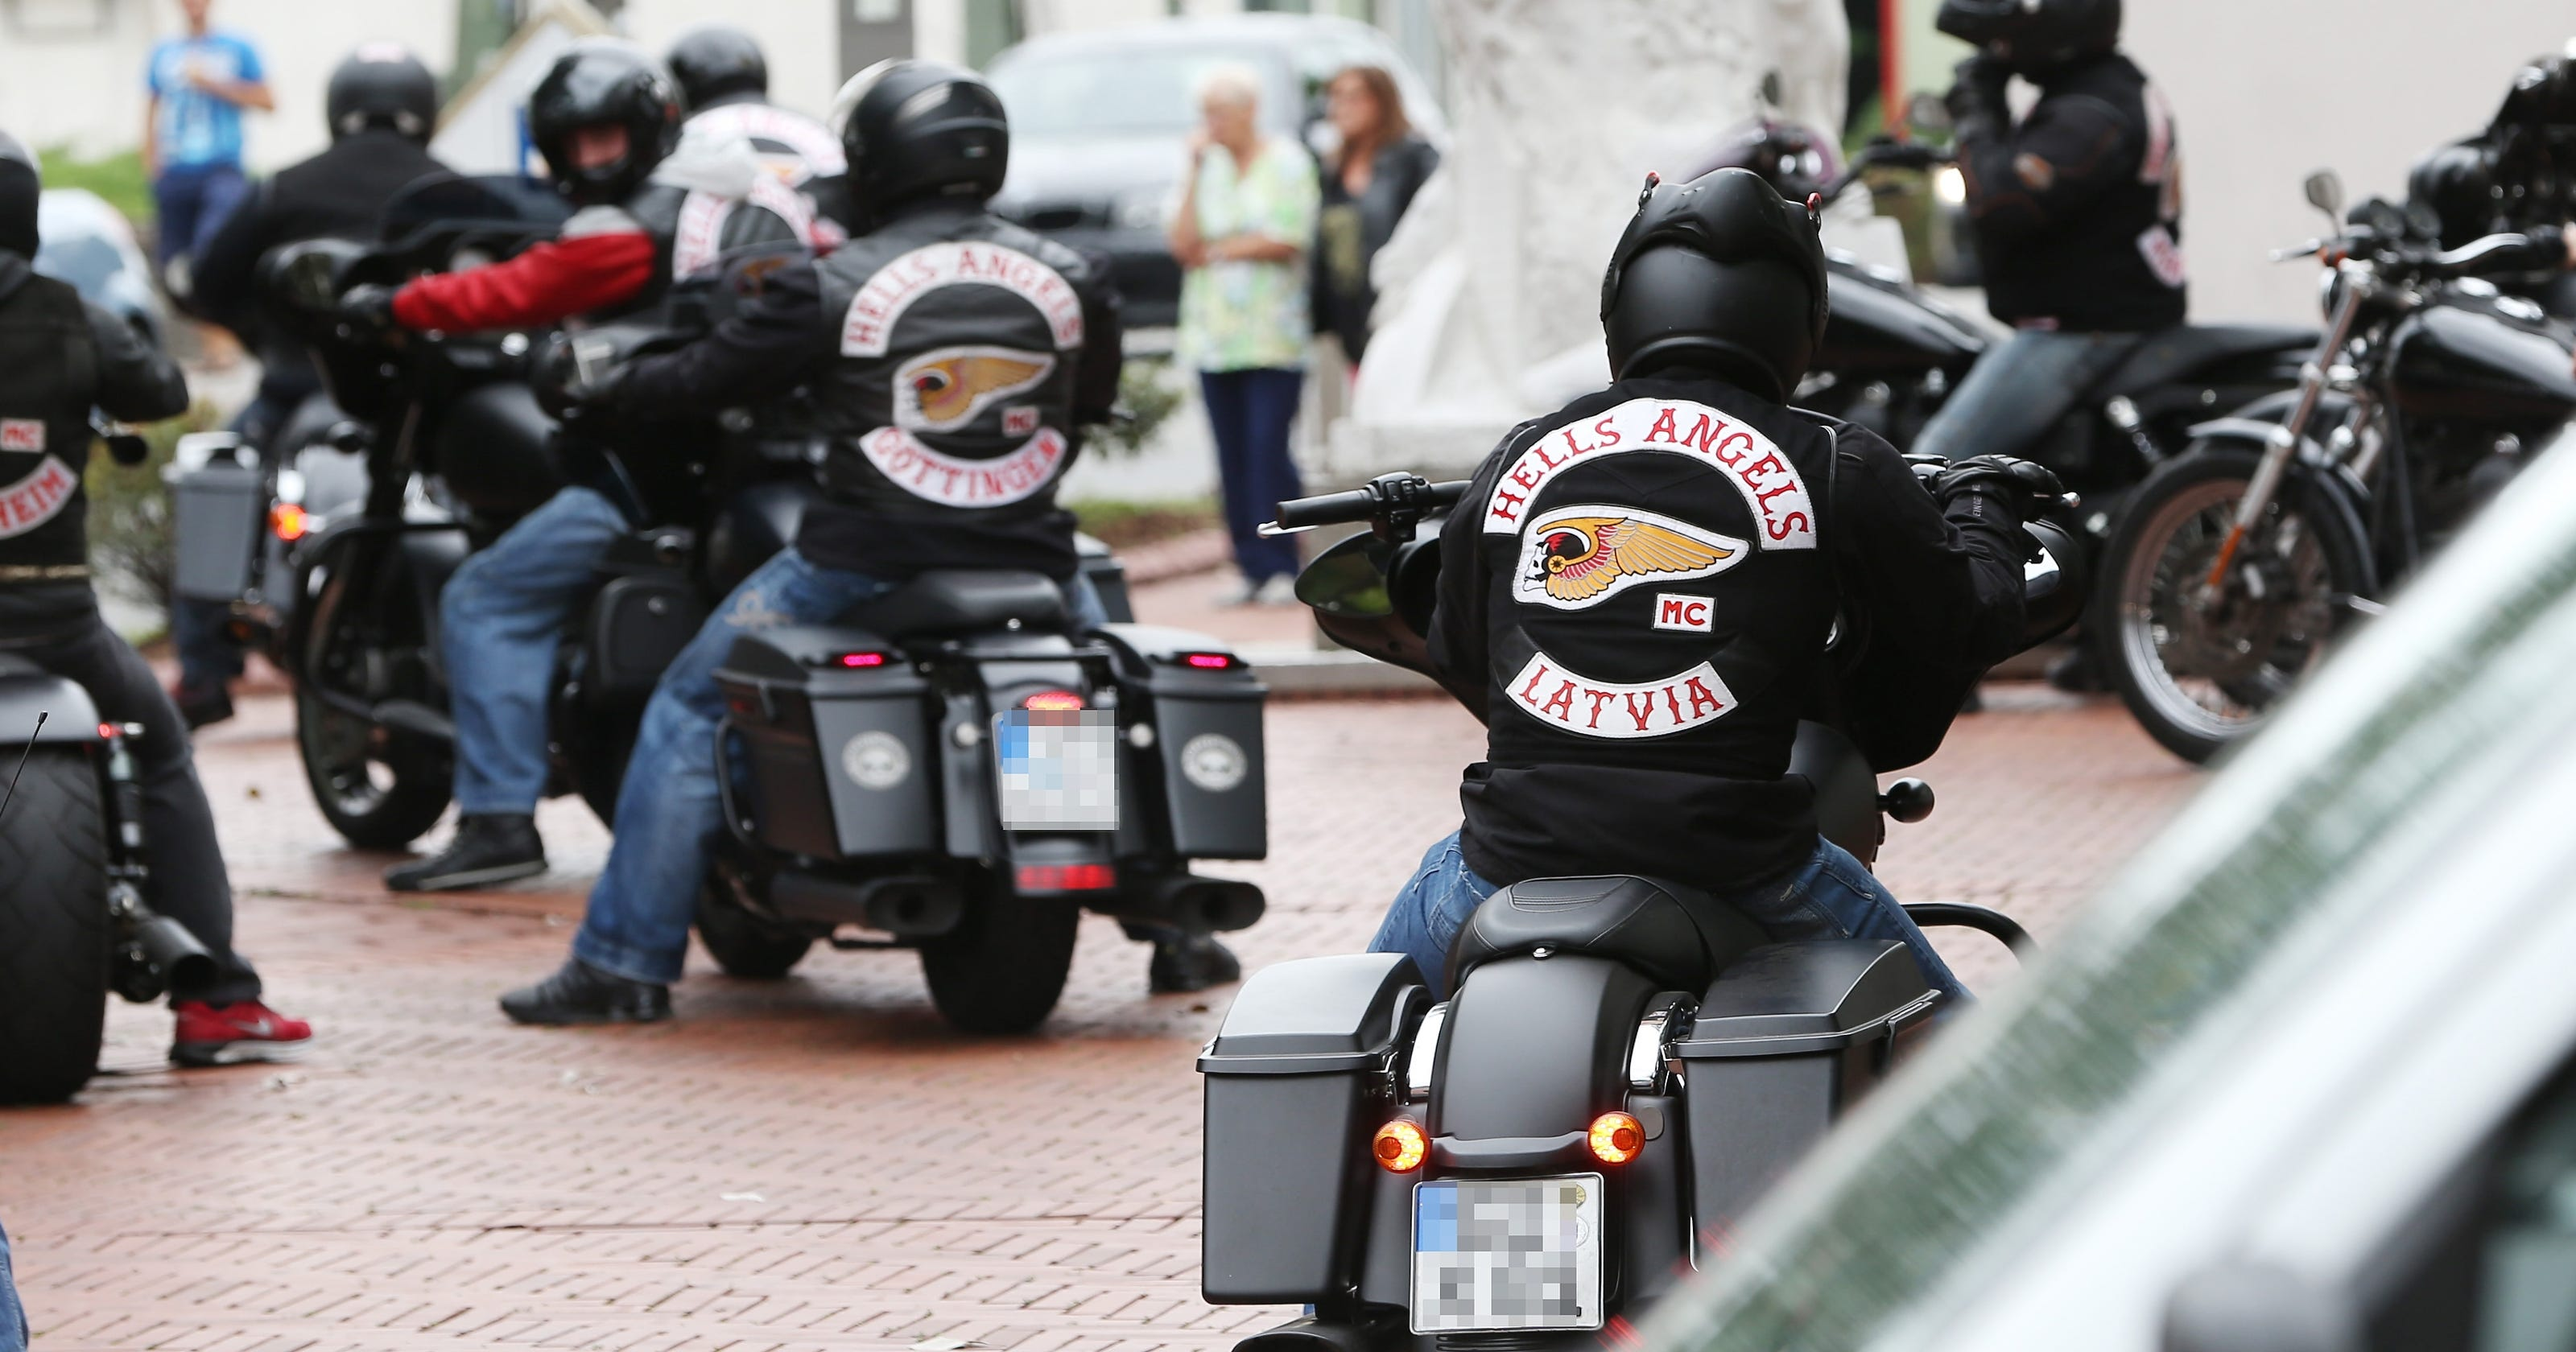 Hells Angels will hold summer convention in SC college town of Clemson